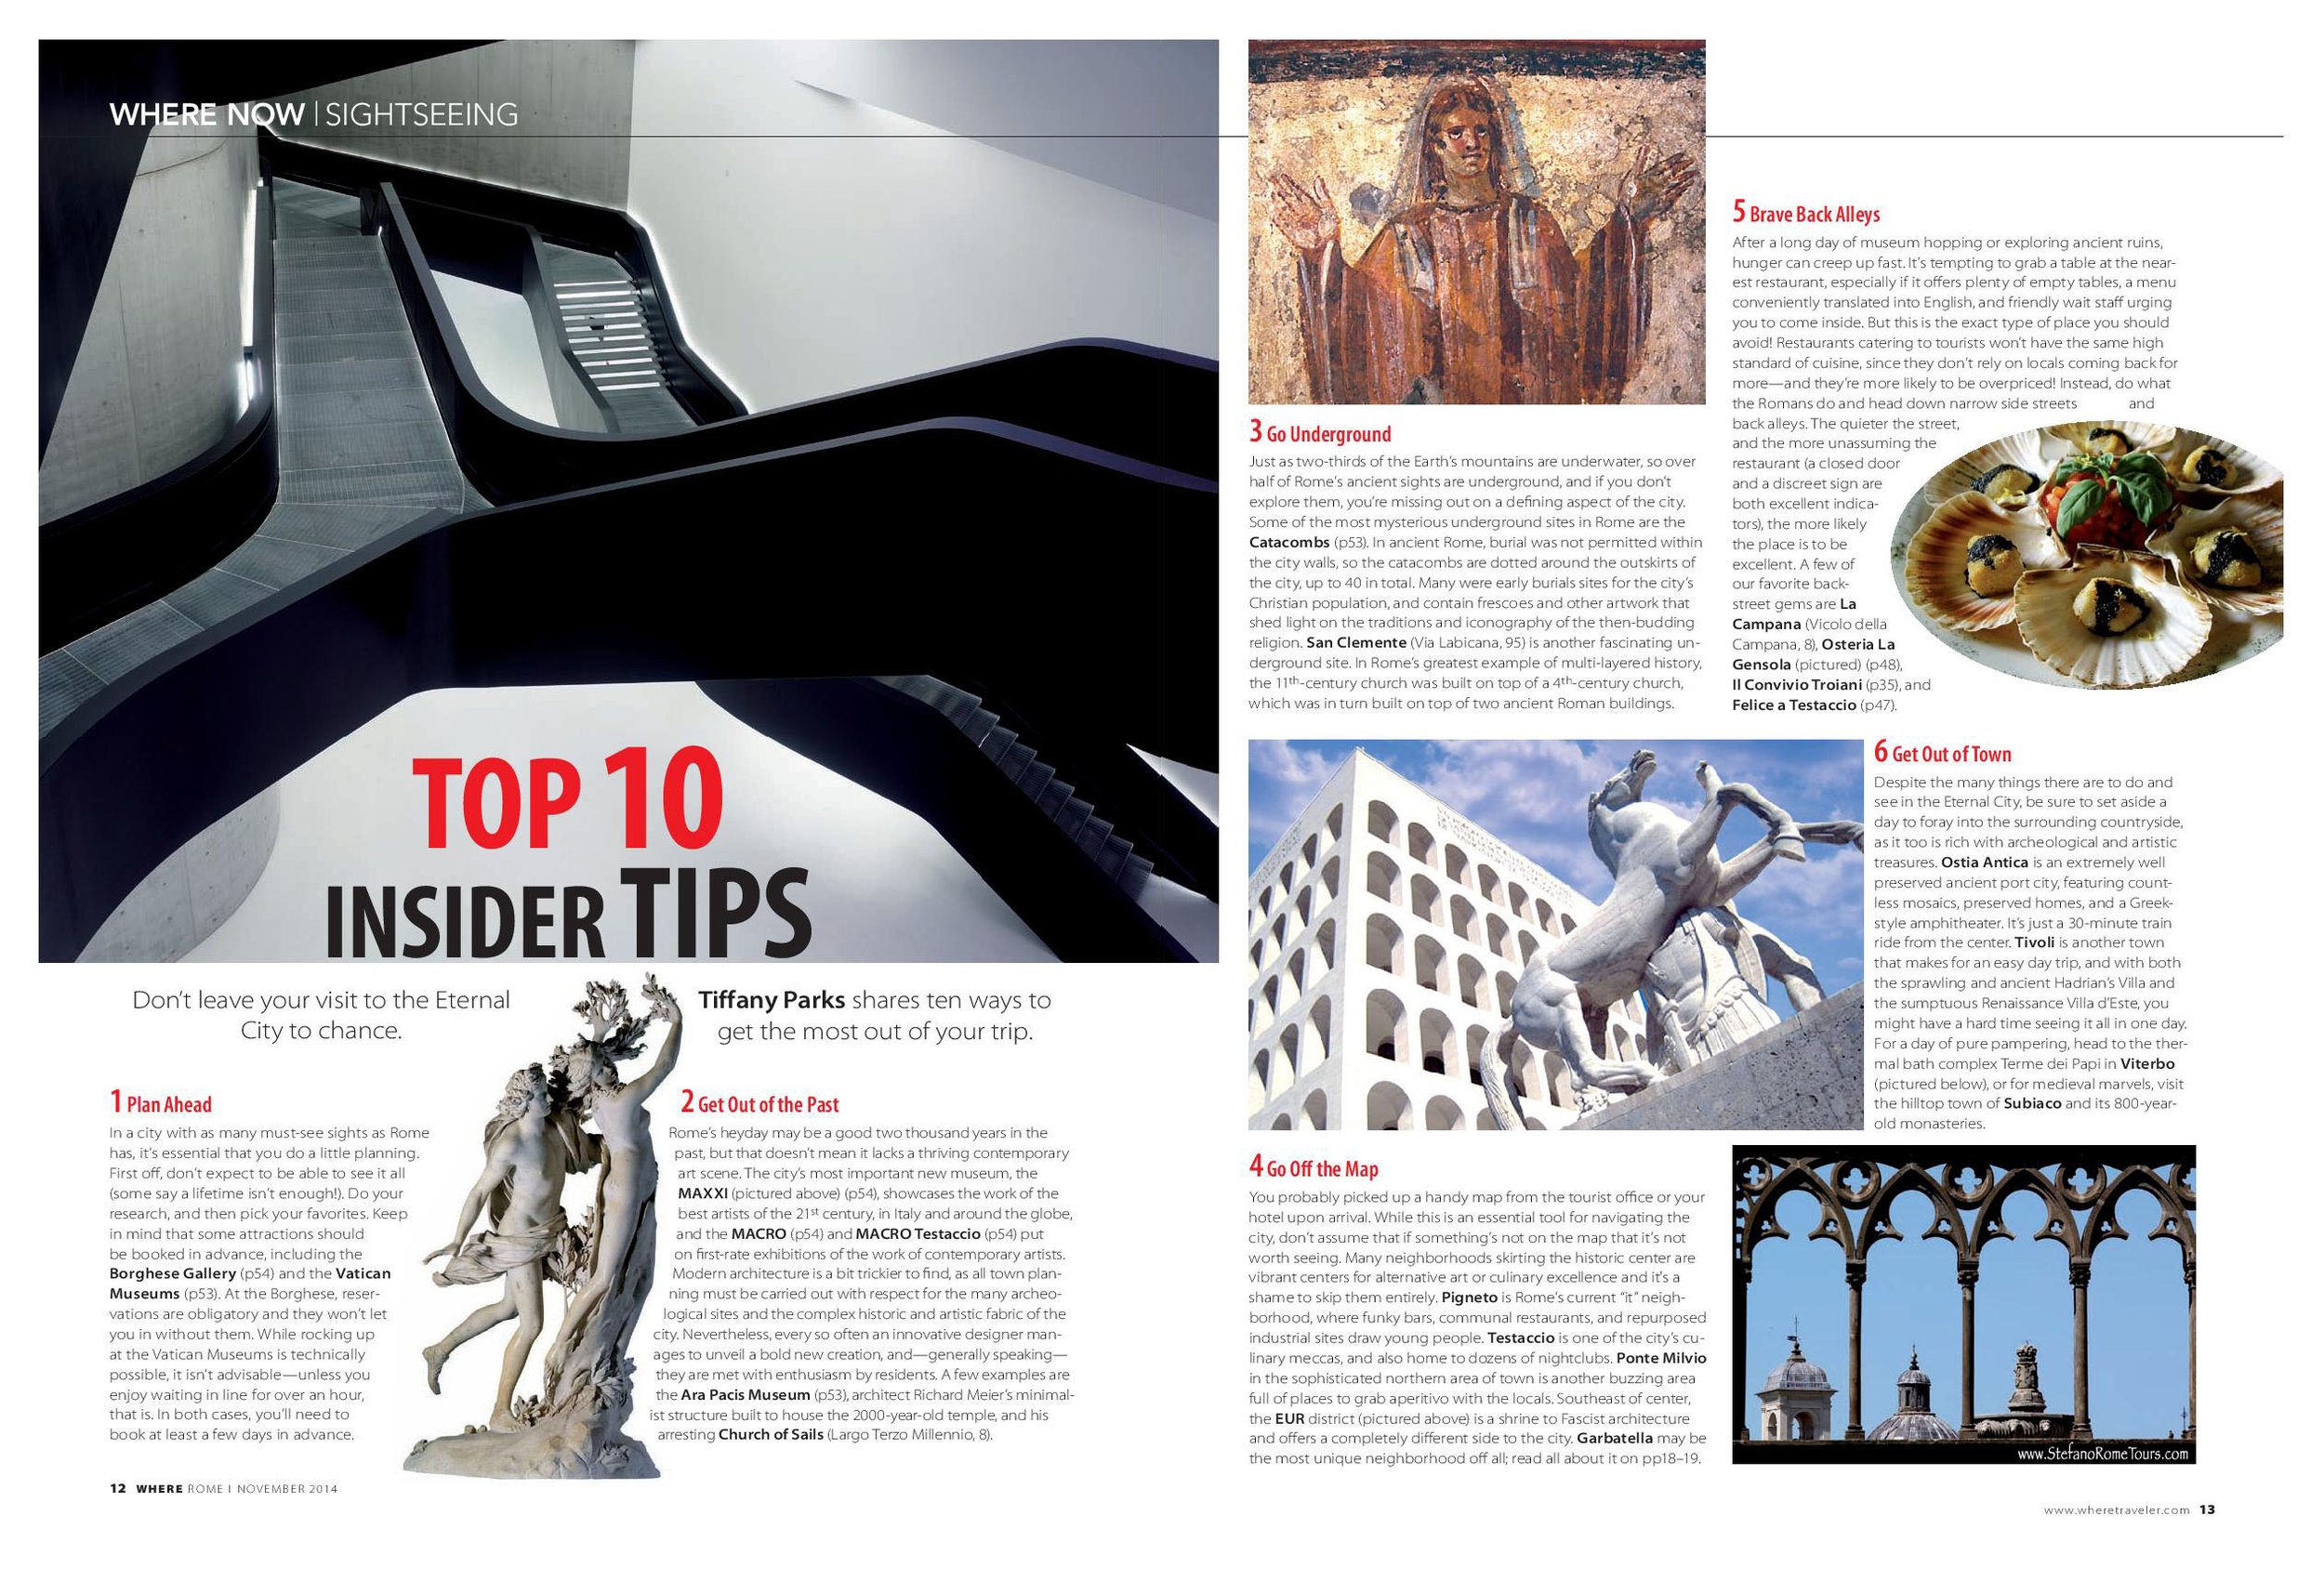 Top-10-Insider-Tips-Where-Rome-doublepage.jpg